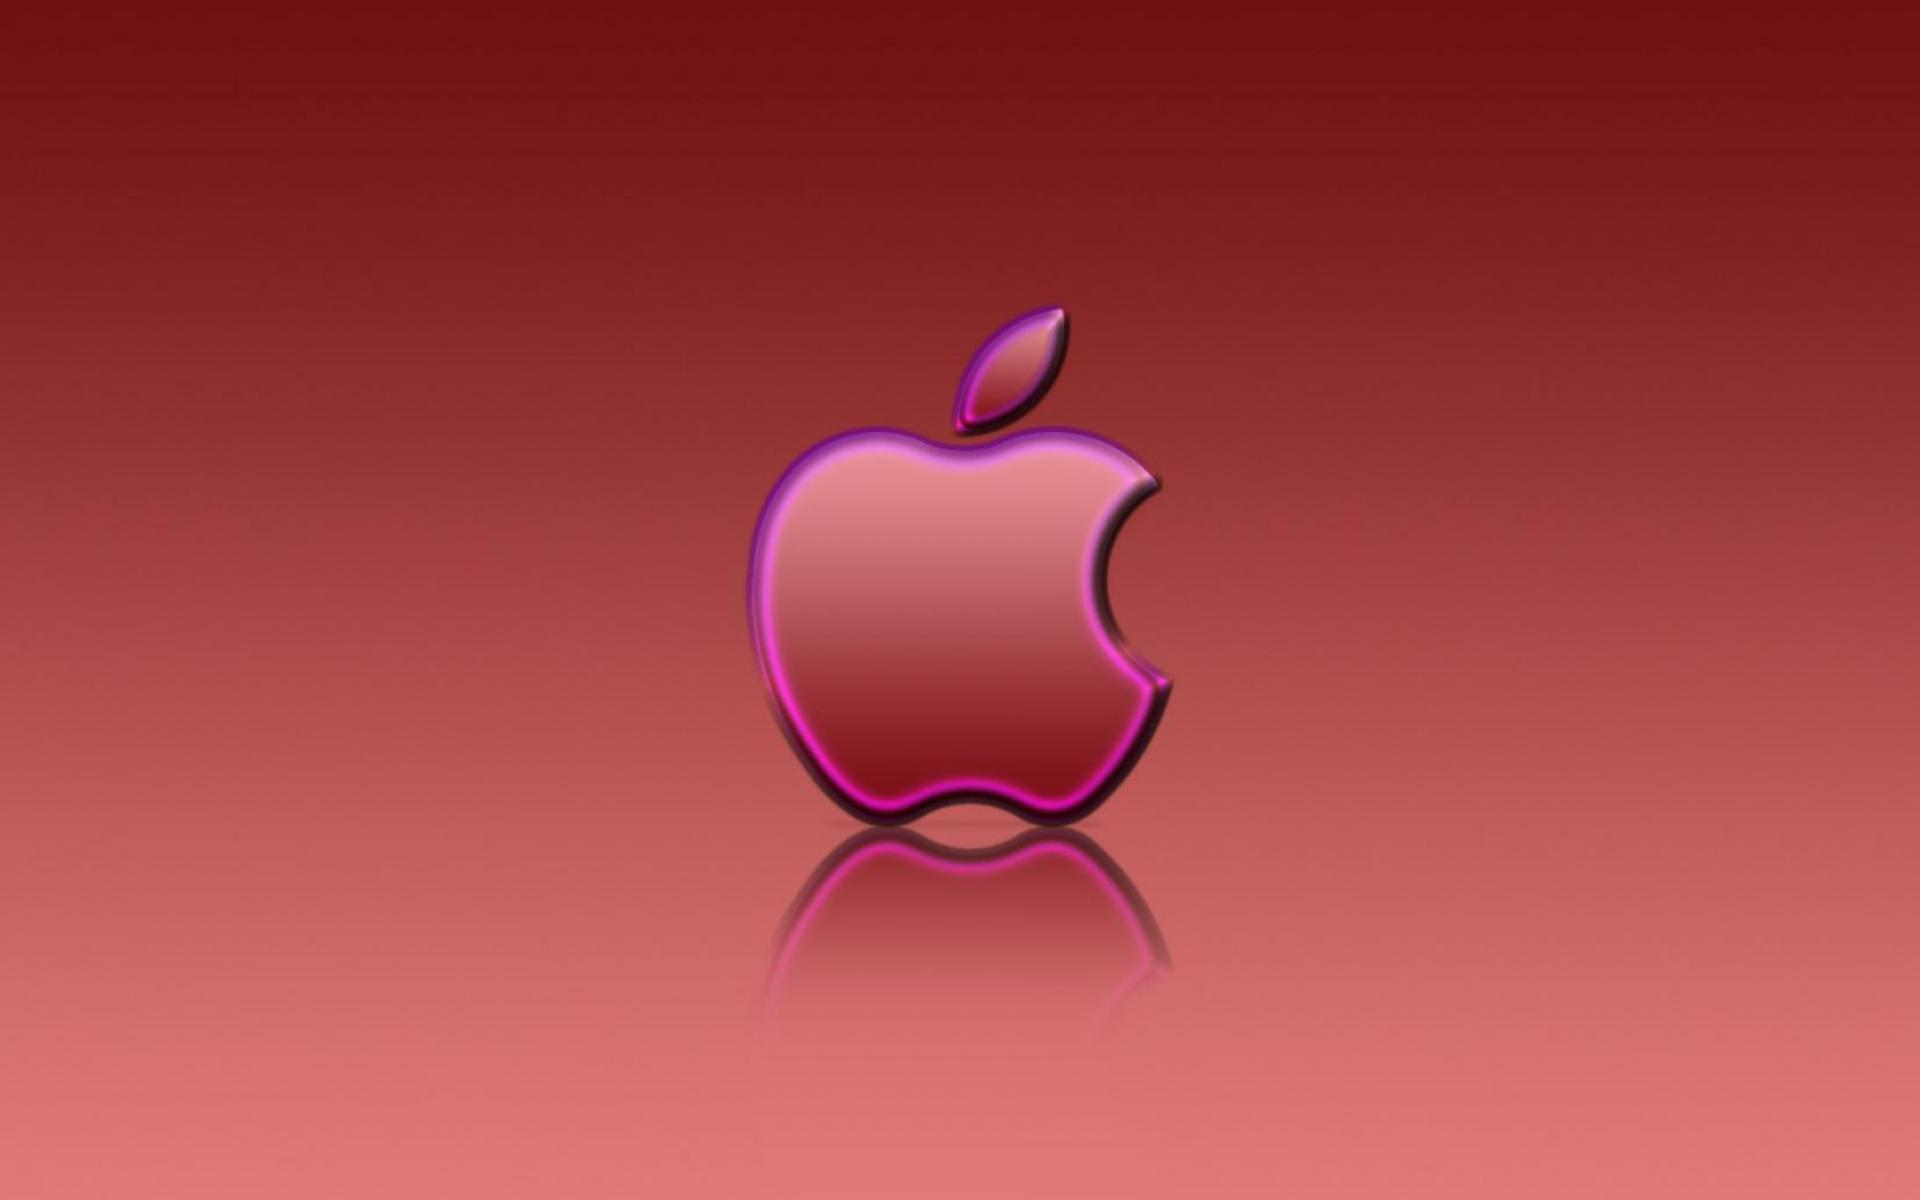 Обои Apple Red Reflexion 1920x1200